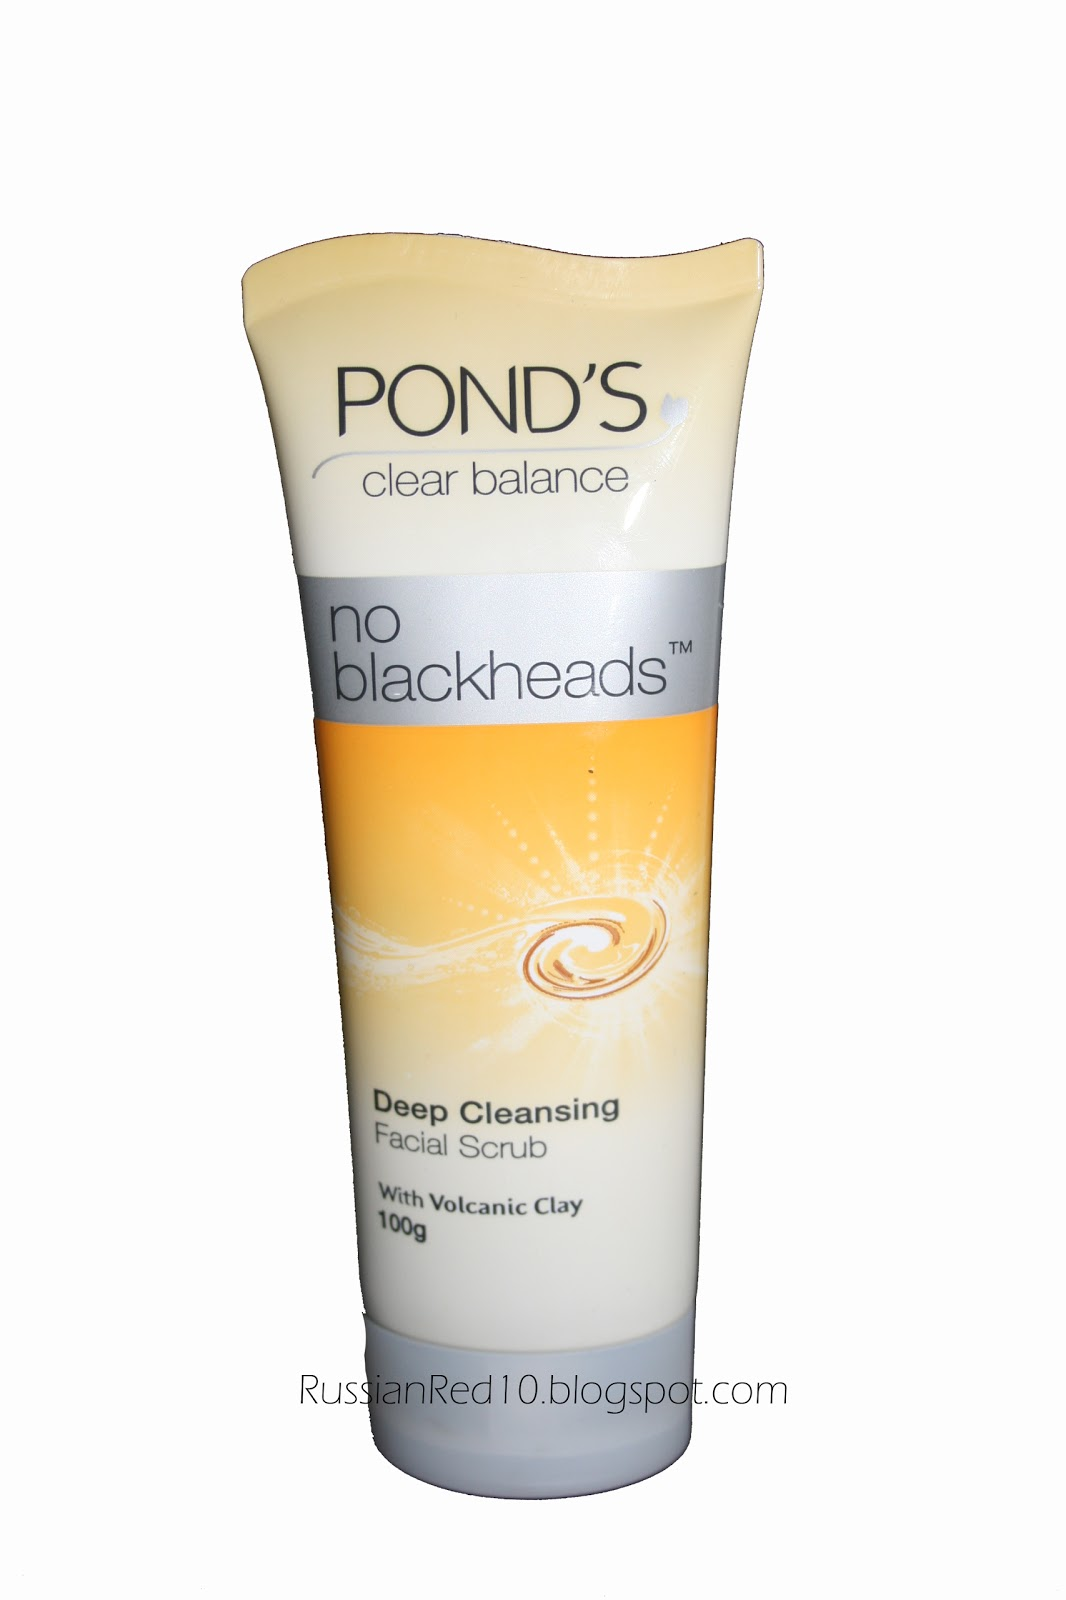 Best 8 ponds products for pimples serpden for Ponds products